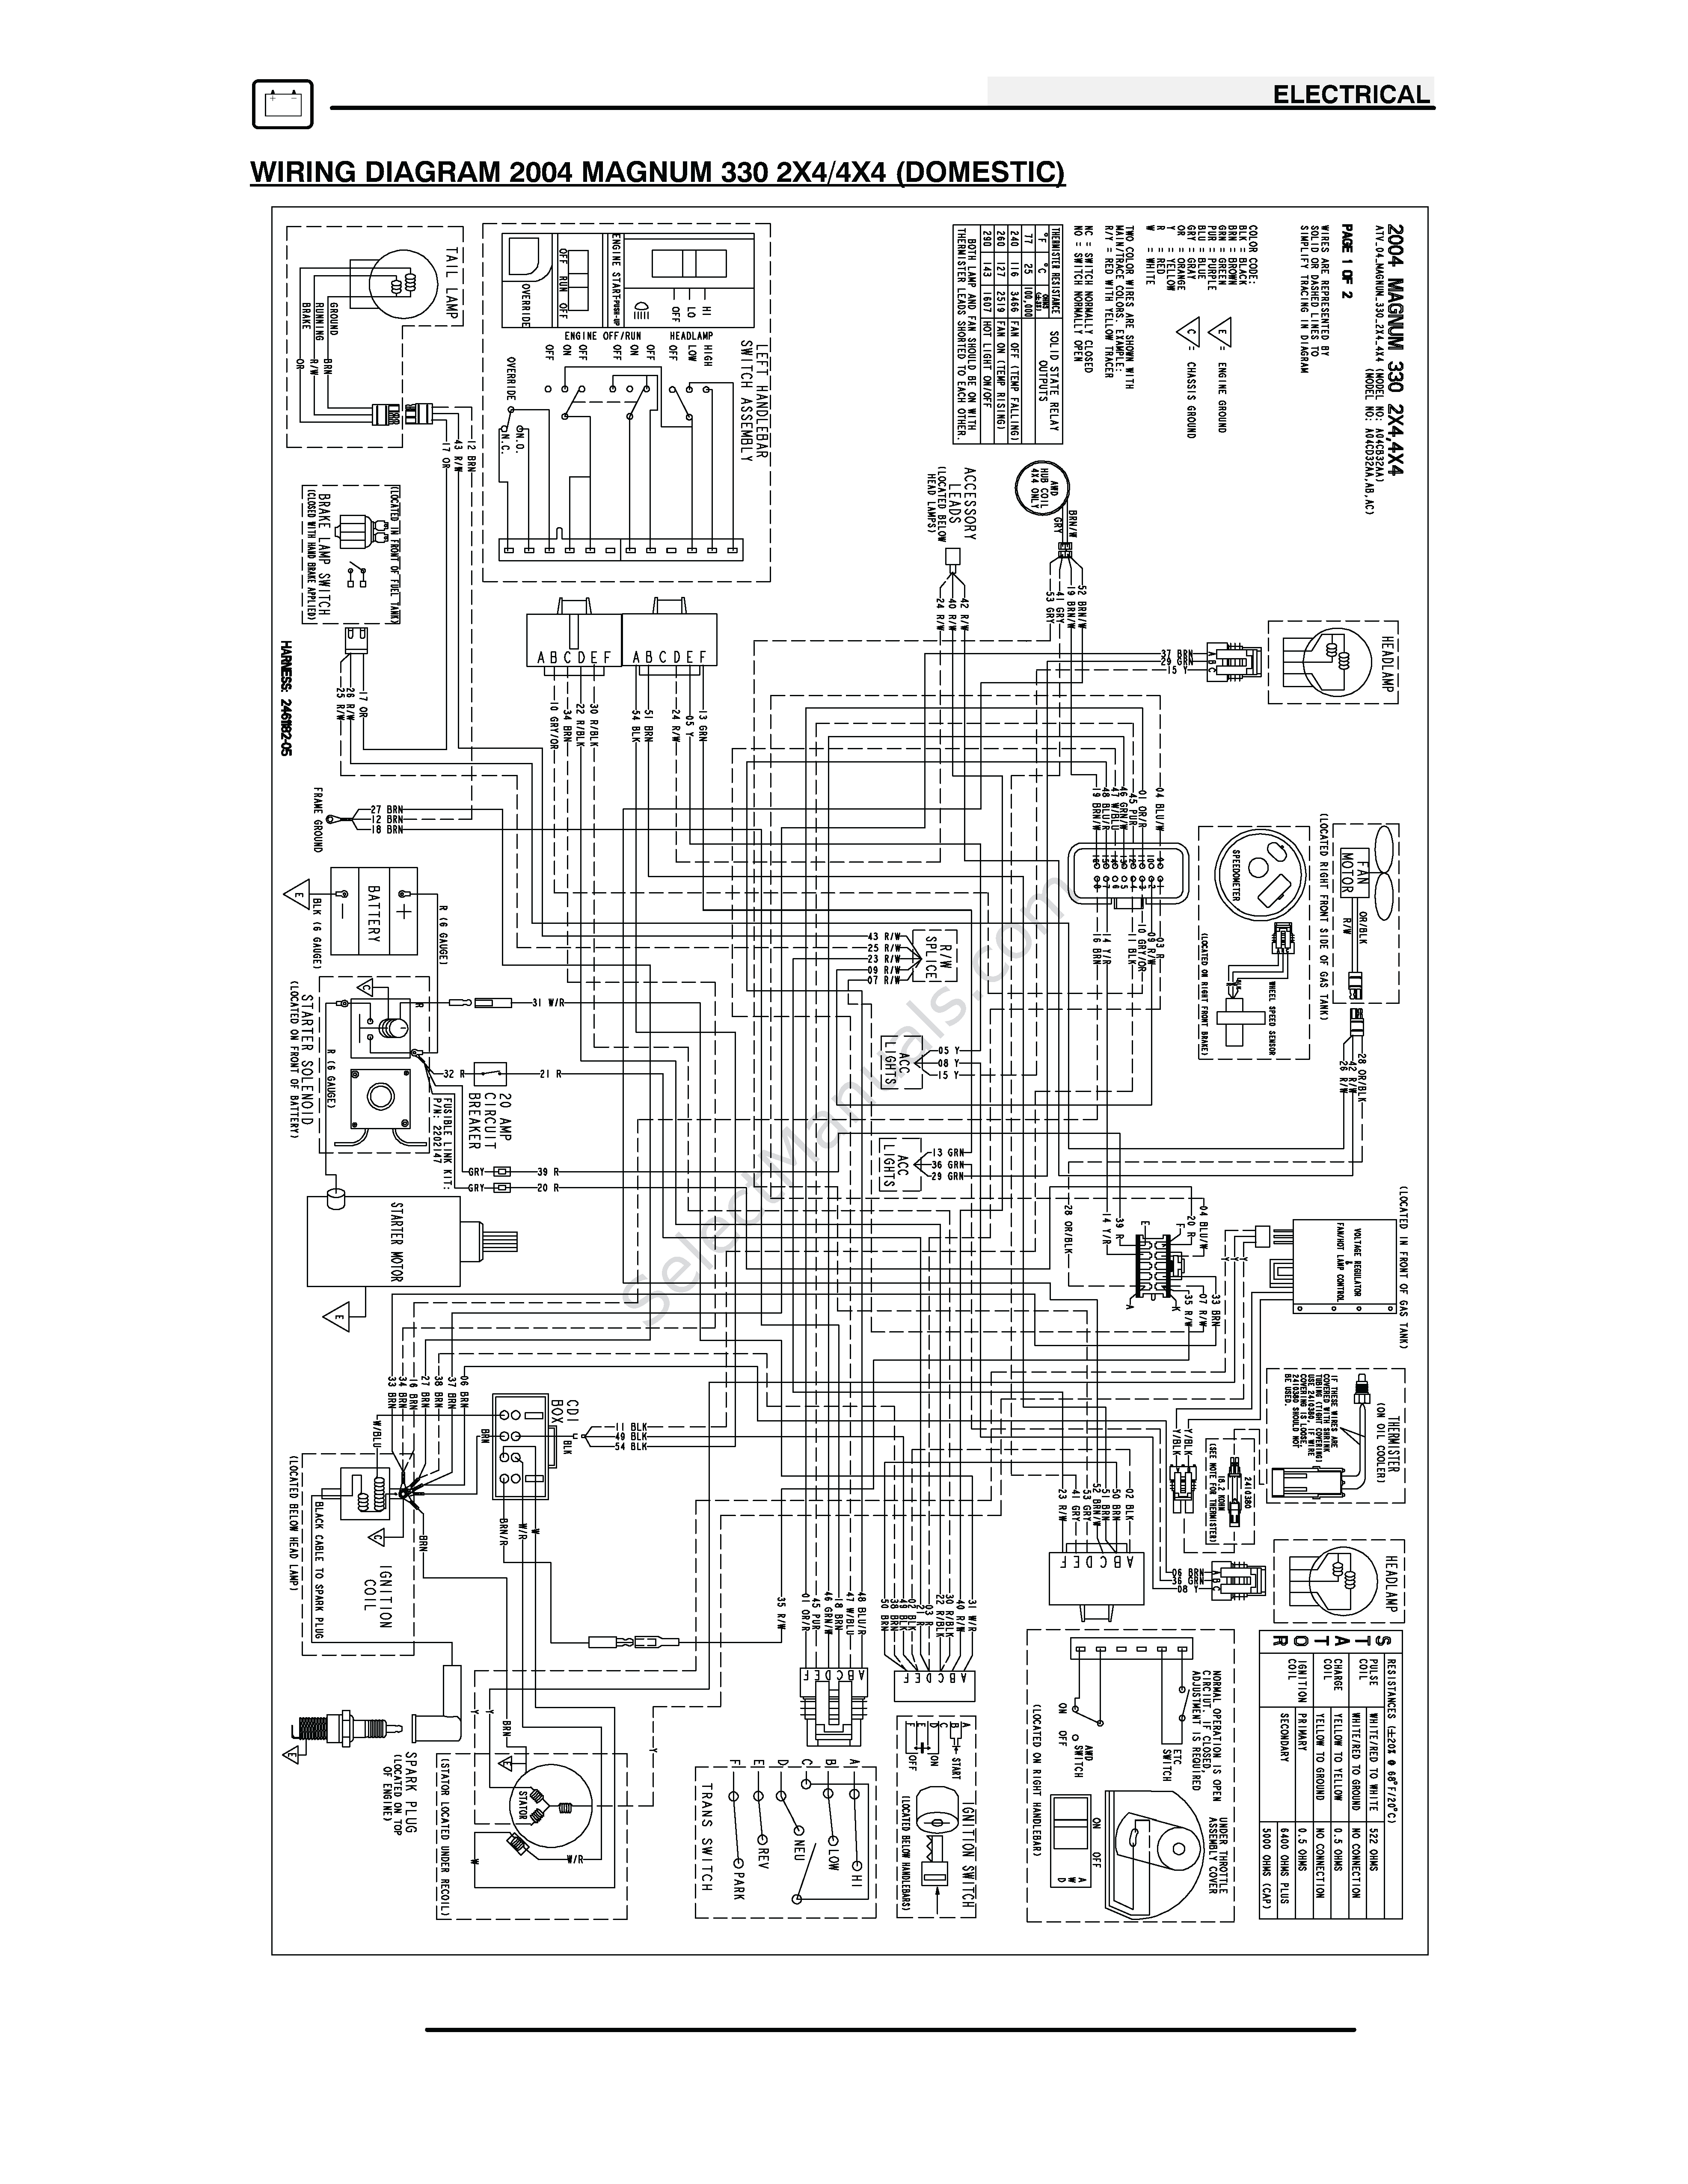 🏆 [DIAGRAM in Pictures Database] Polaris Magnum 330 Wiring Diagram Just  Download or Read Wiring Diagram - BOAT-WIRING-DIAGRAM.ONYXUM.COMOnyxum.com